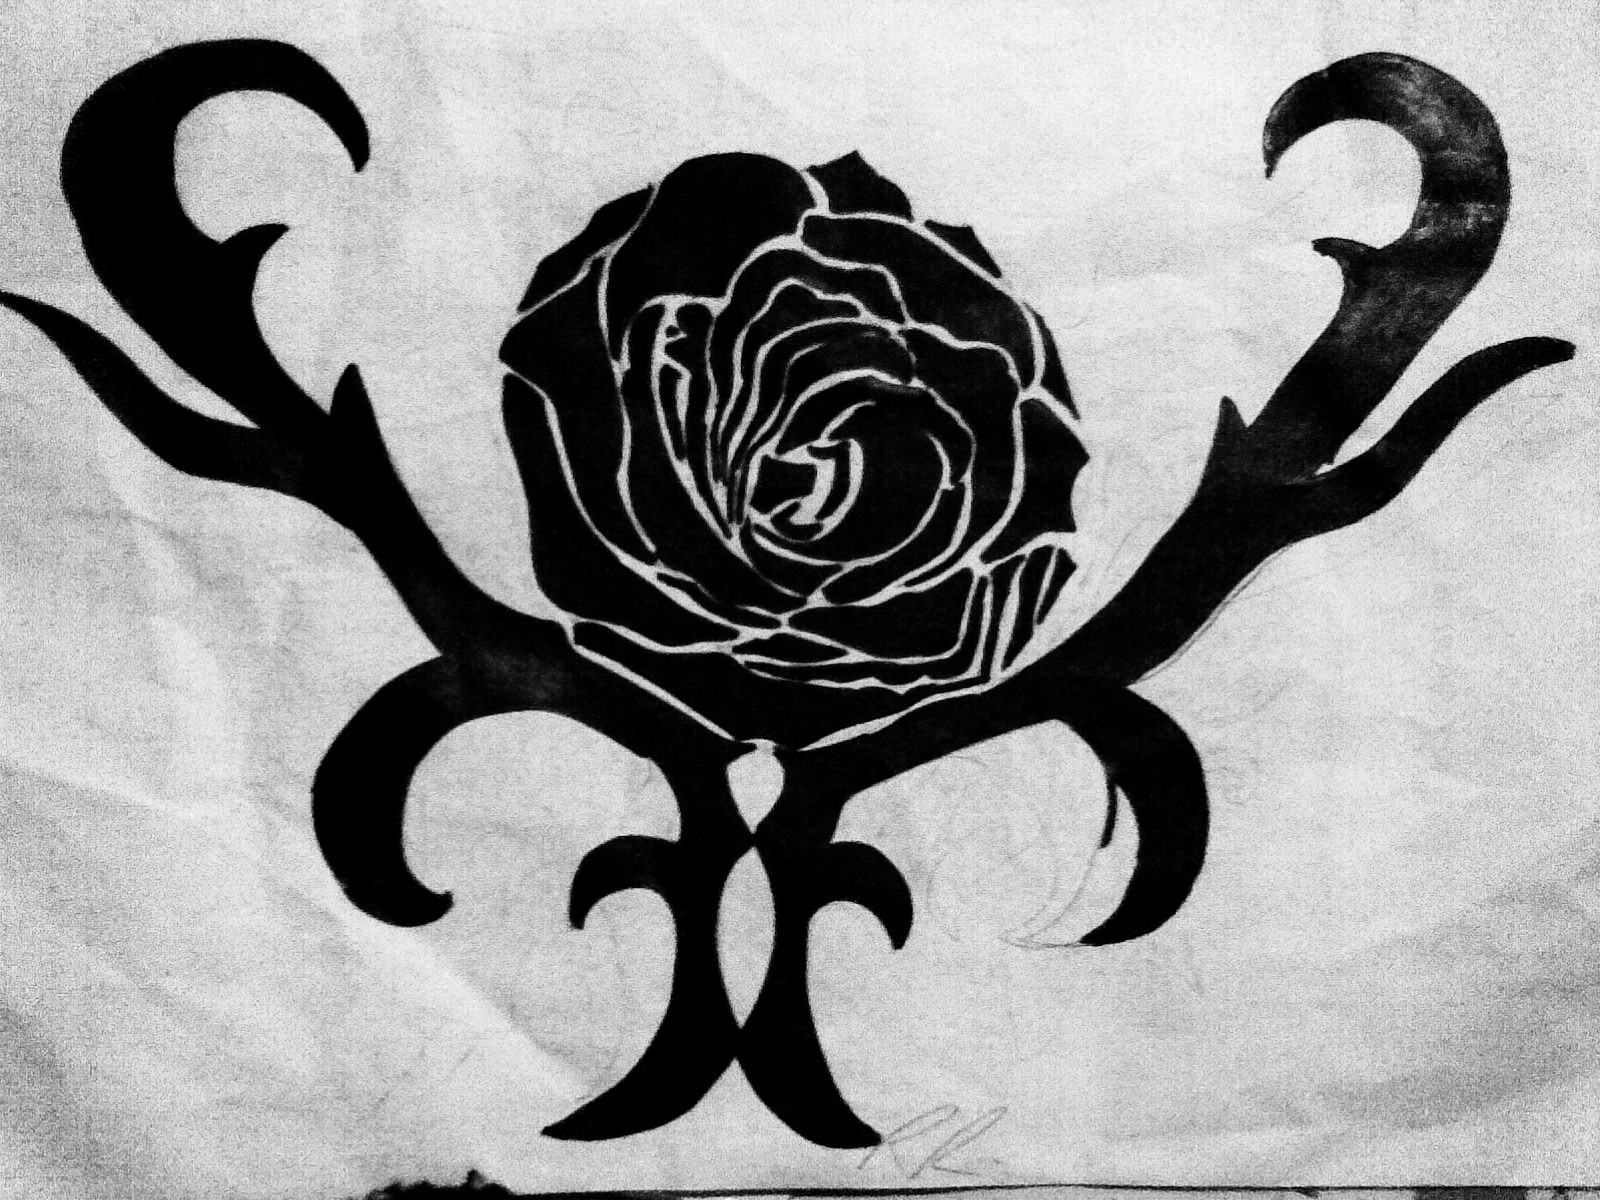 Tattoos for Men 2011: Tribal Rose Tattoos - Find Great ...